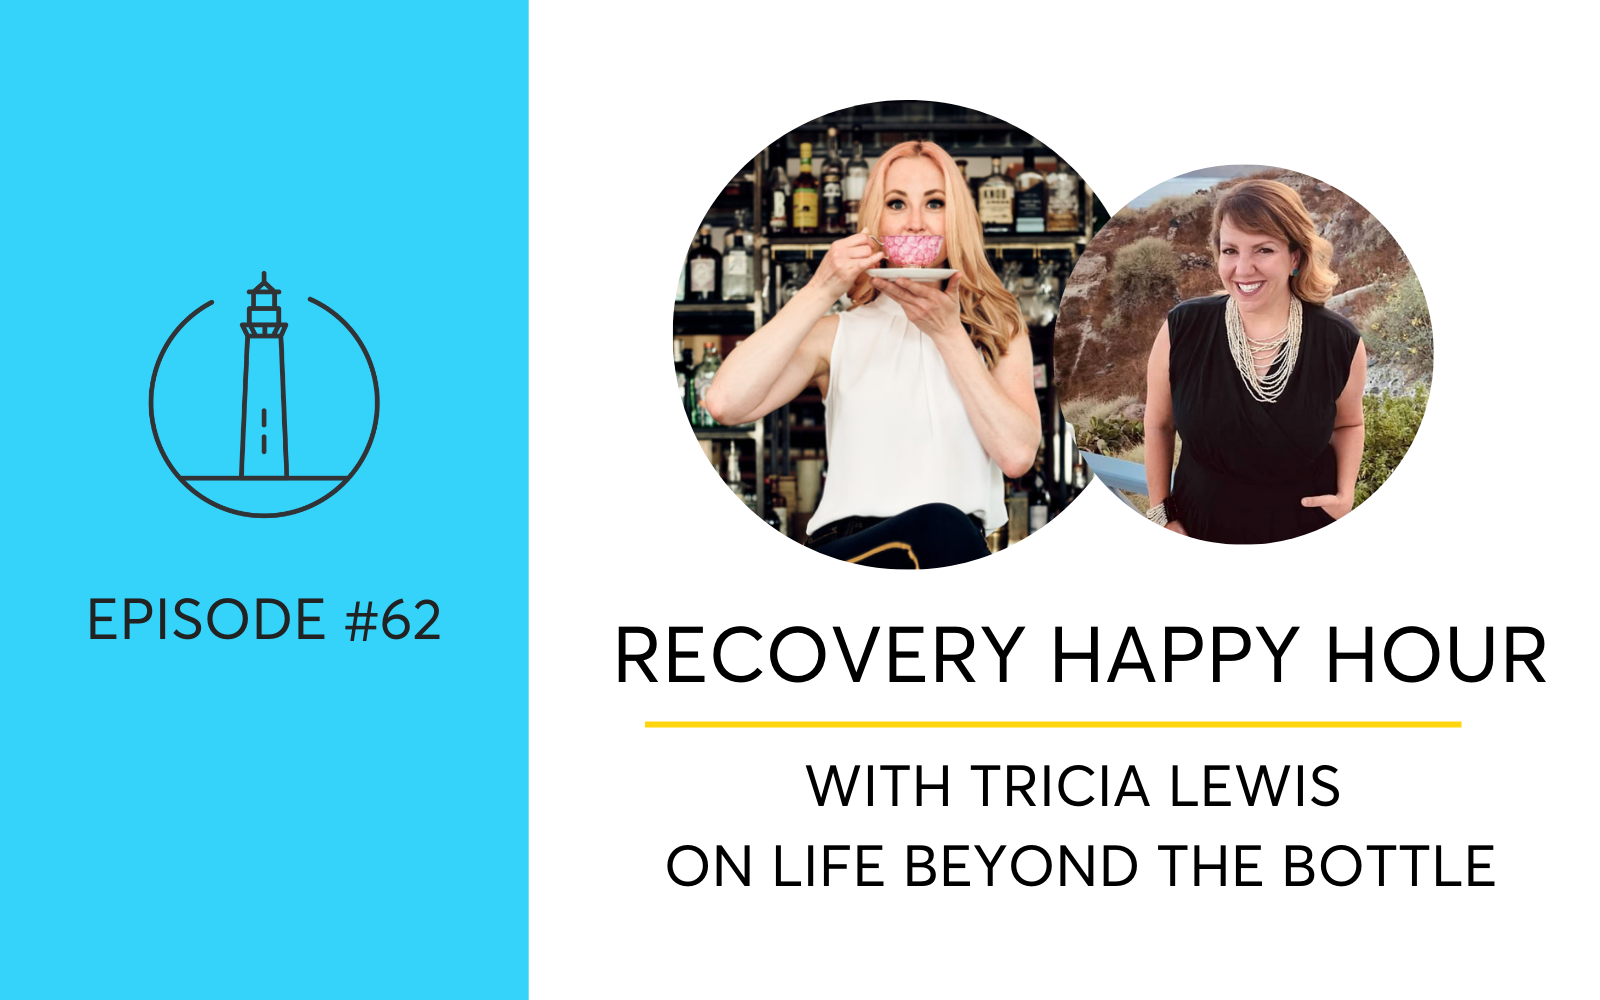 Recovery Happy Hour + Life Beyond The Bottle